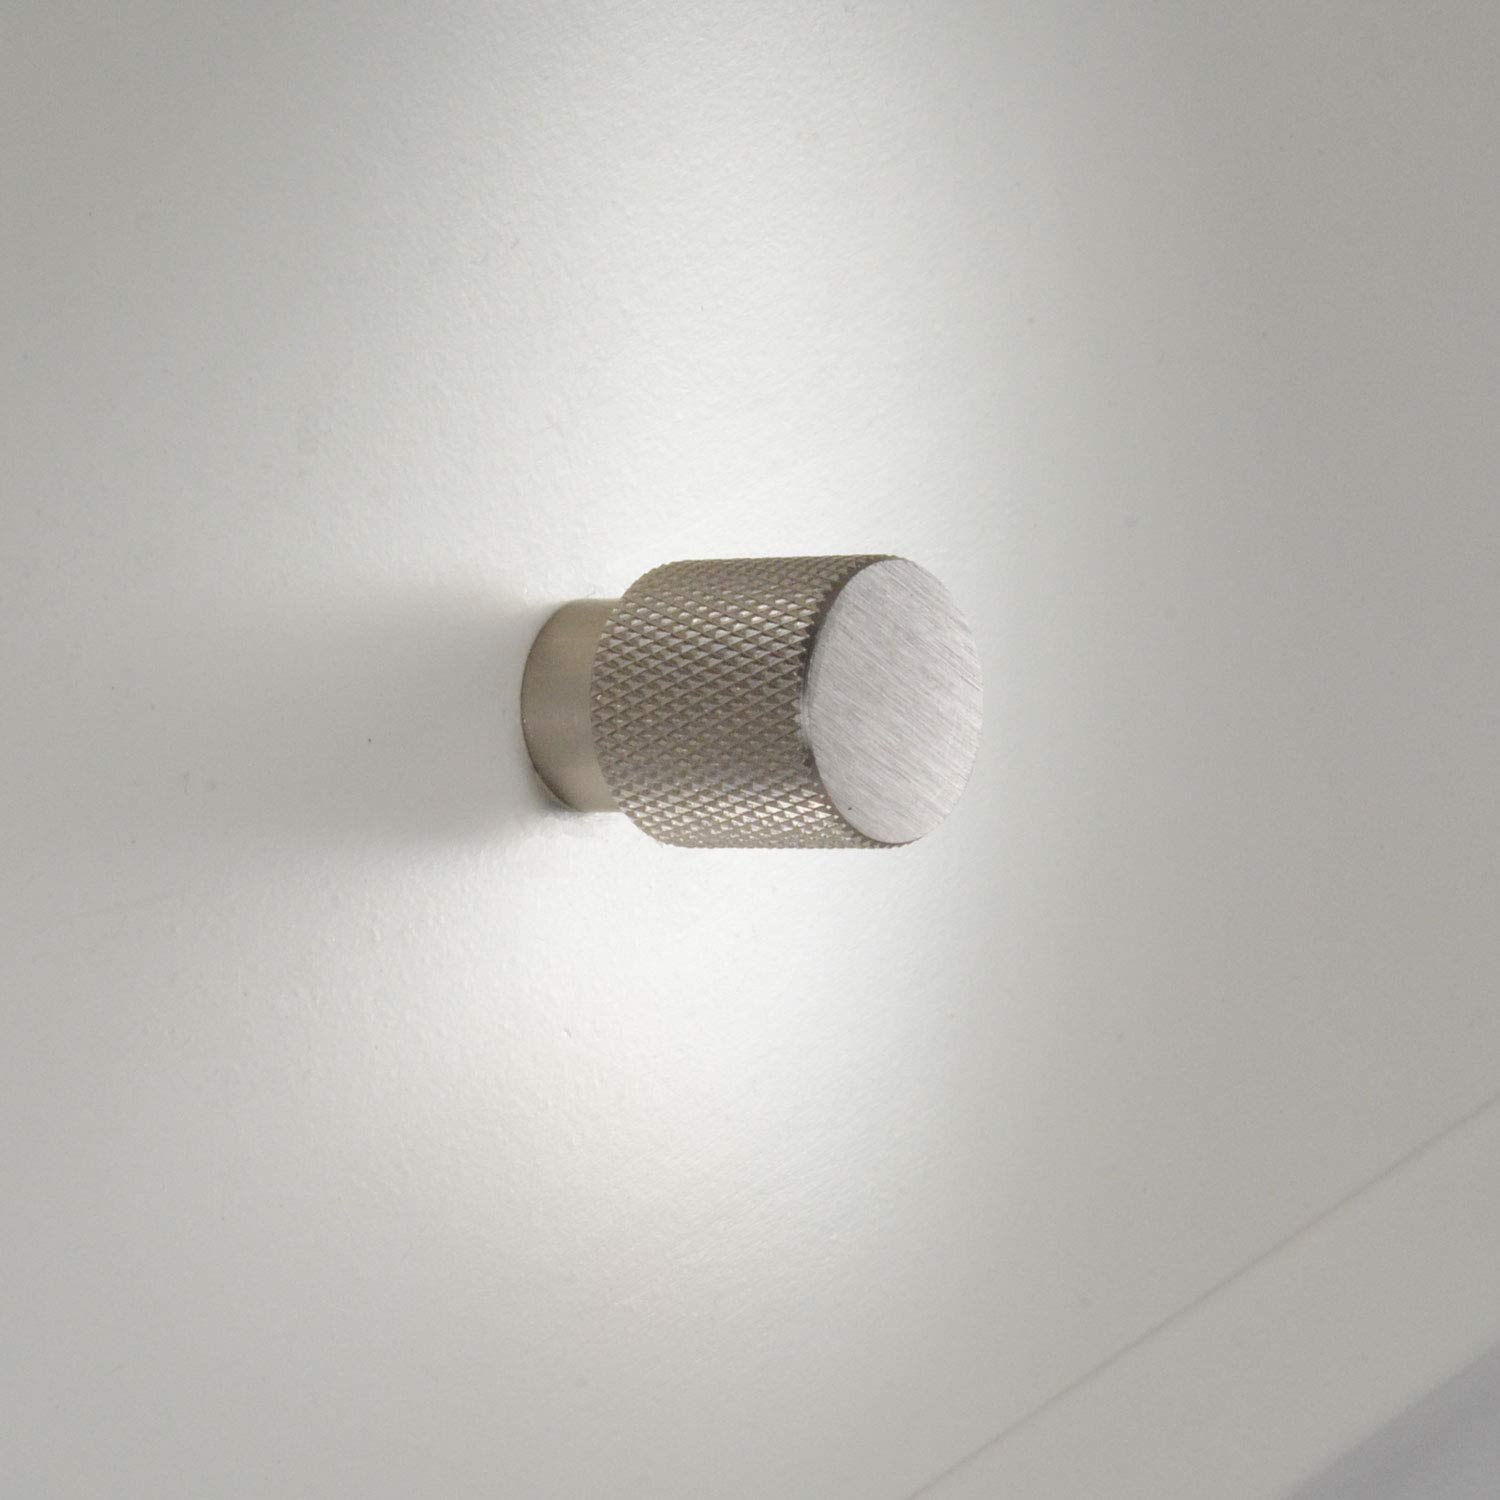 #6500 CKP Brand Linear Aluminum 3/4 in. (20mm) Knurled Knob, Brushed Nickel - 25 Pack by CKP (Image #4)